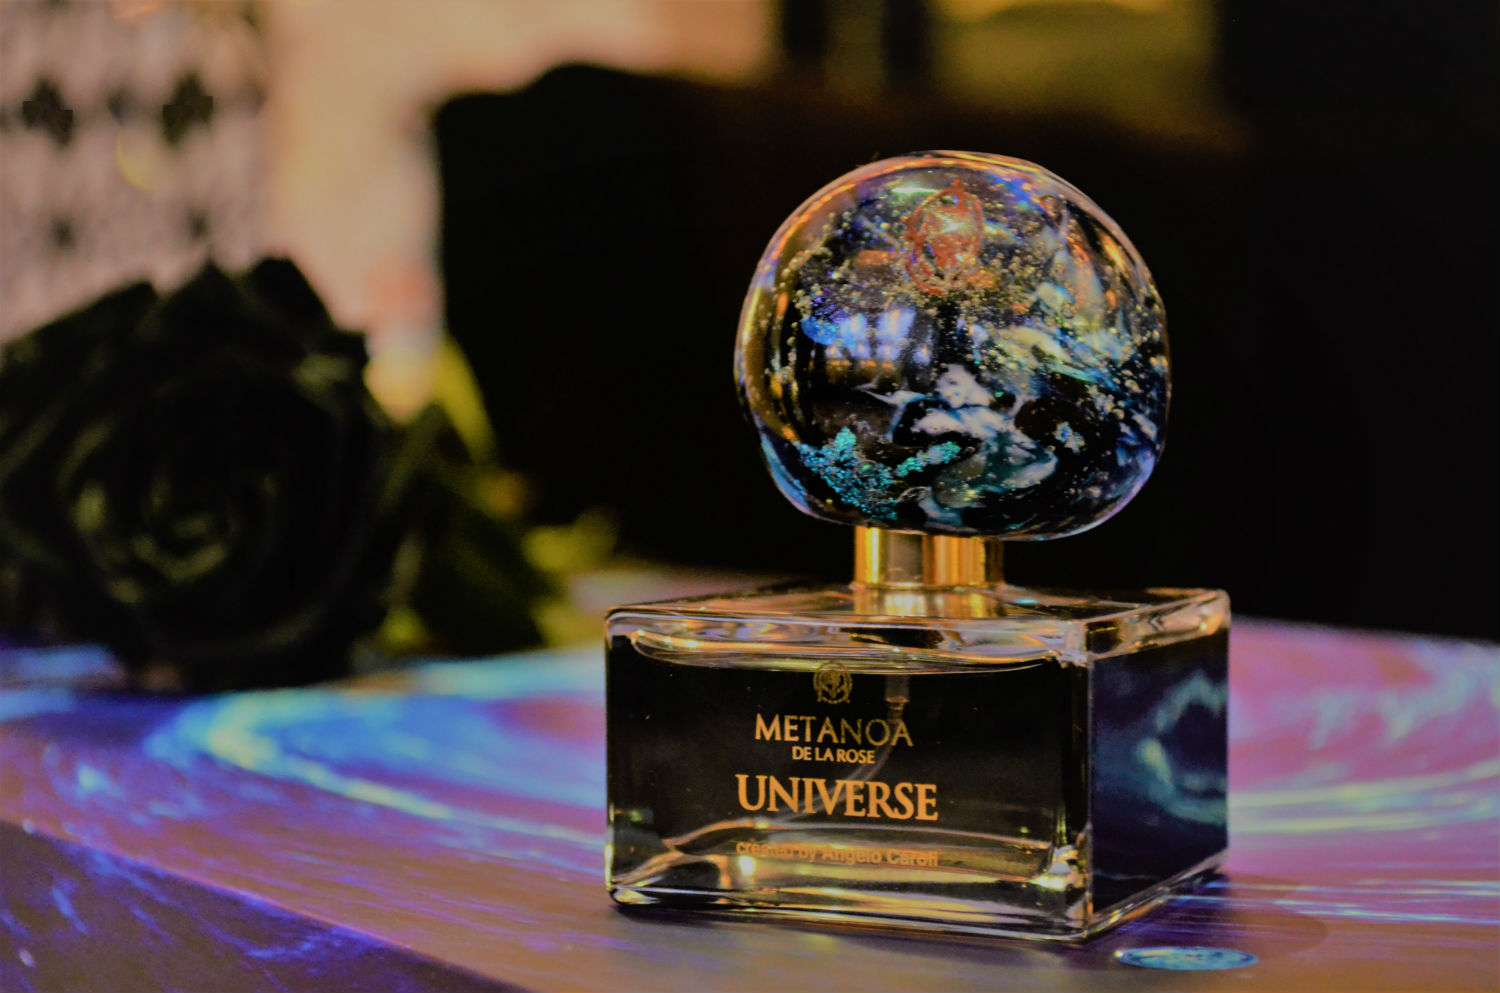 UNIVERSE & Black Rose Eau de Parfum 50ml  (limited edition